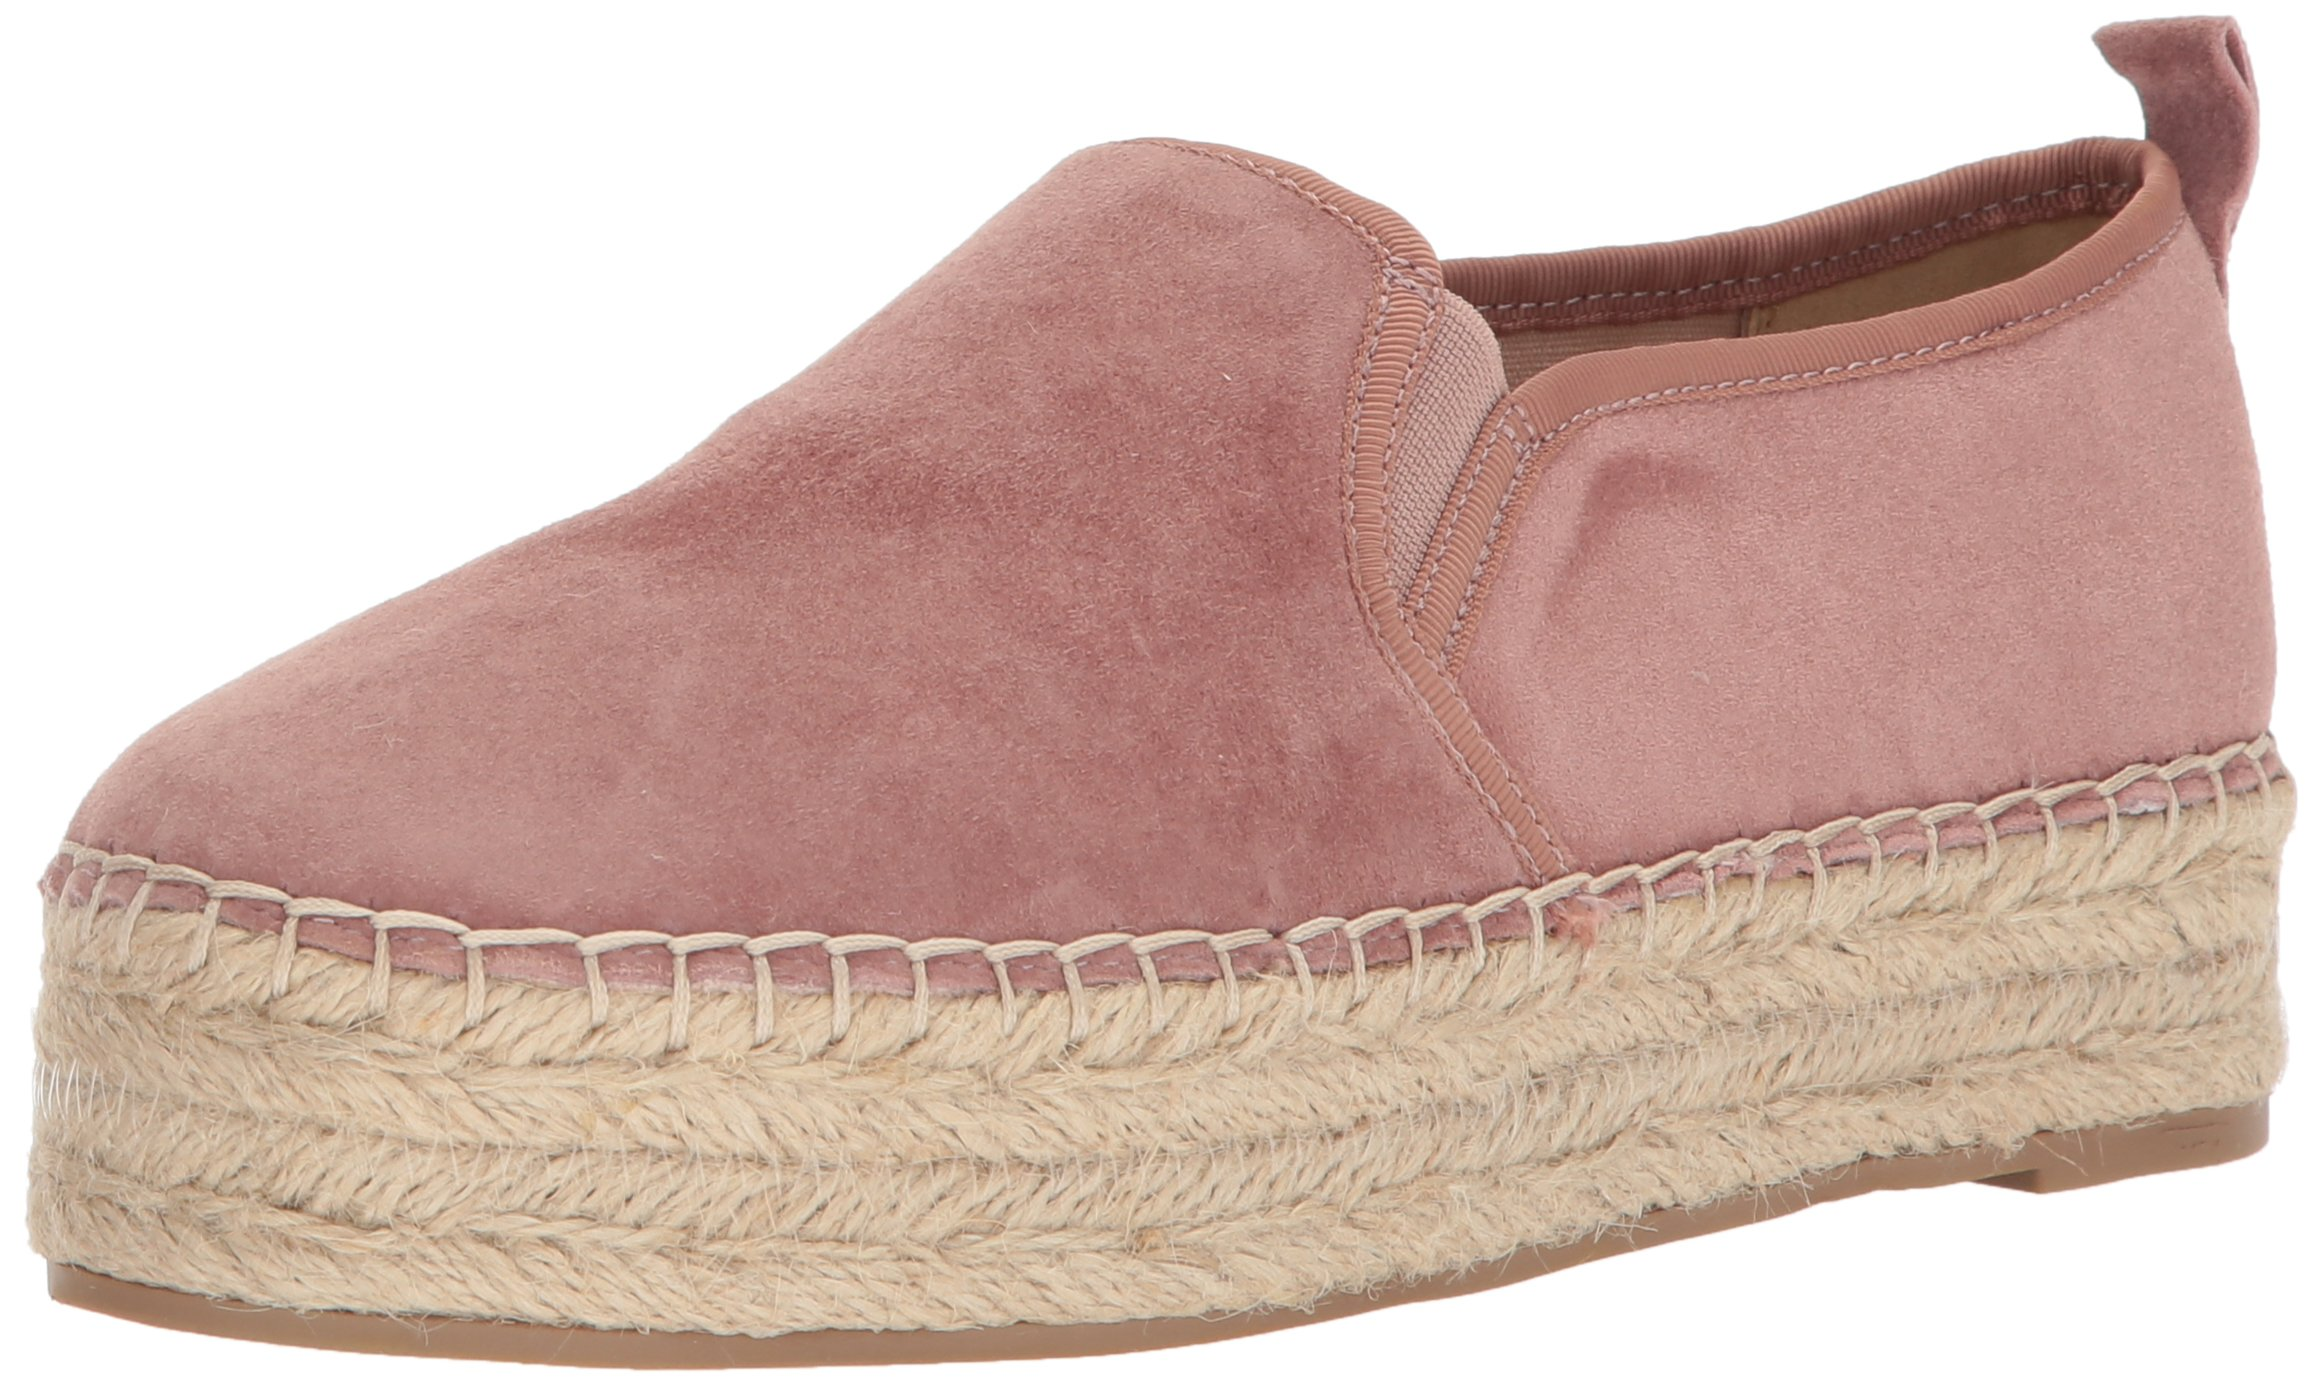 Sam Edelman Women's Carrin Platform, Dusty Rose Suede, 10 Medium US